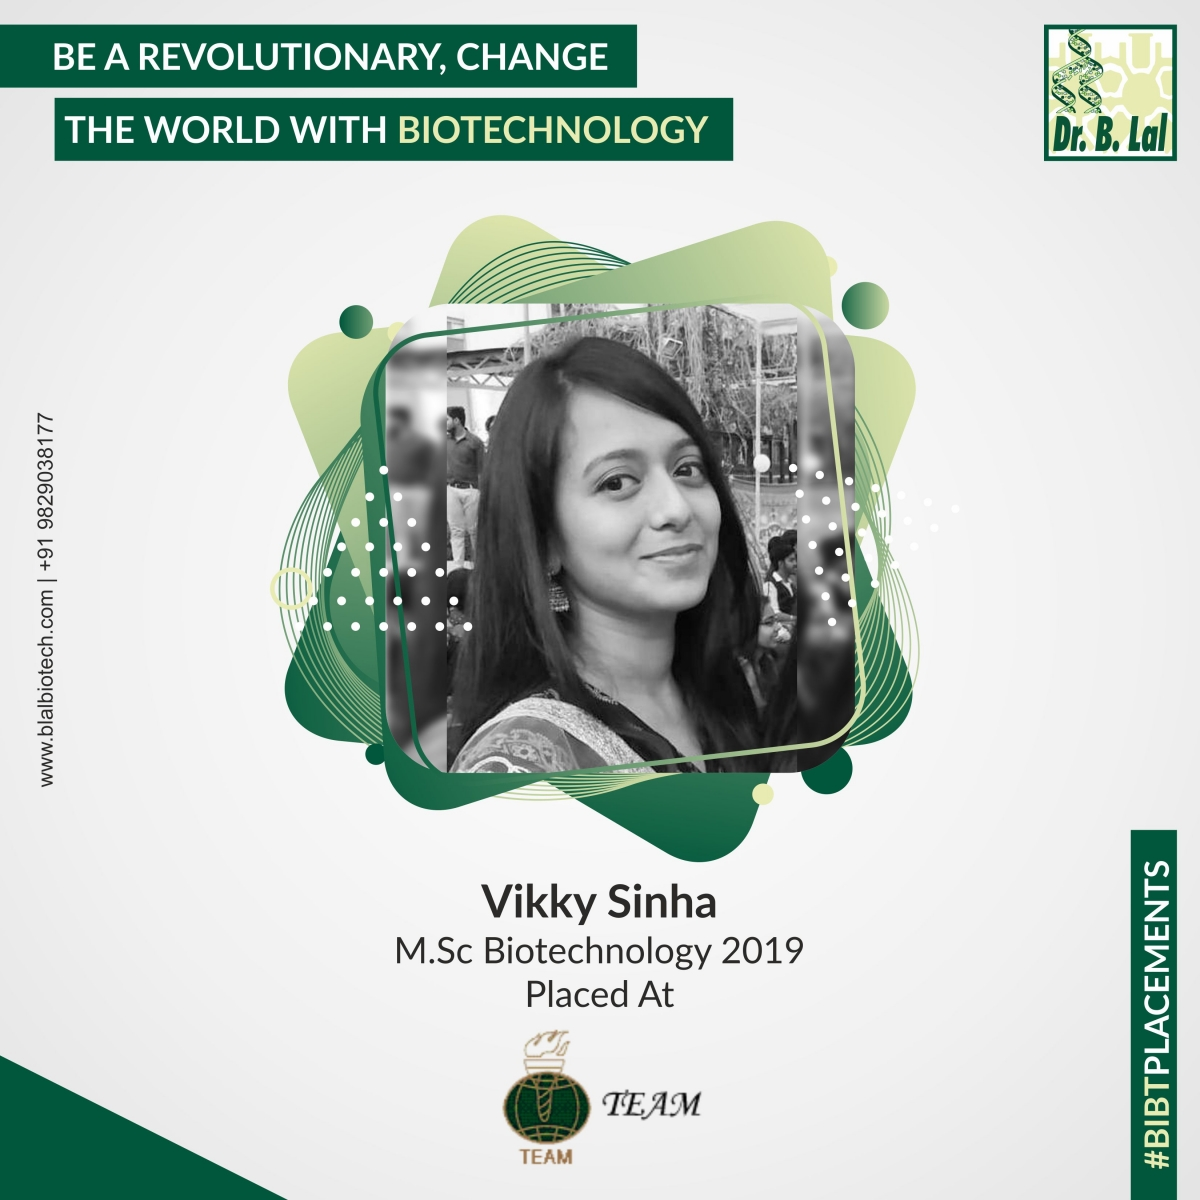 Vikky Sinha, M.Sc. Biotechnology 2019 | #BIBTPlacements